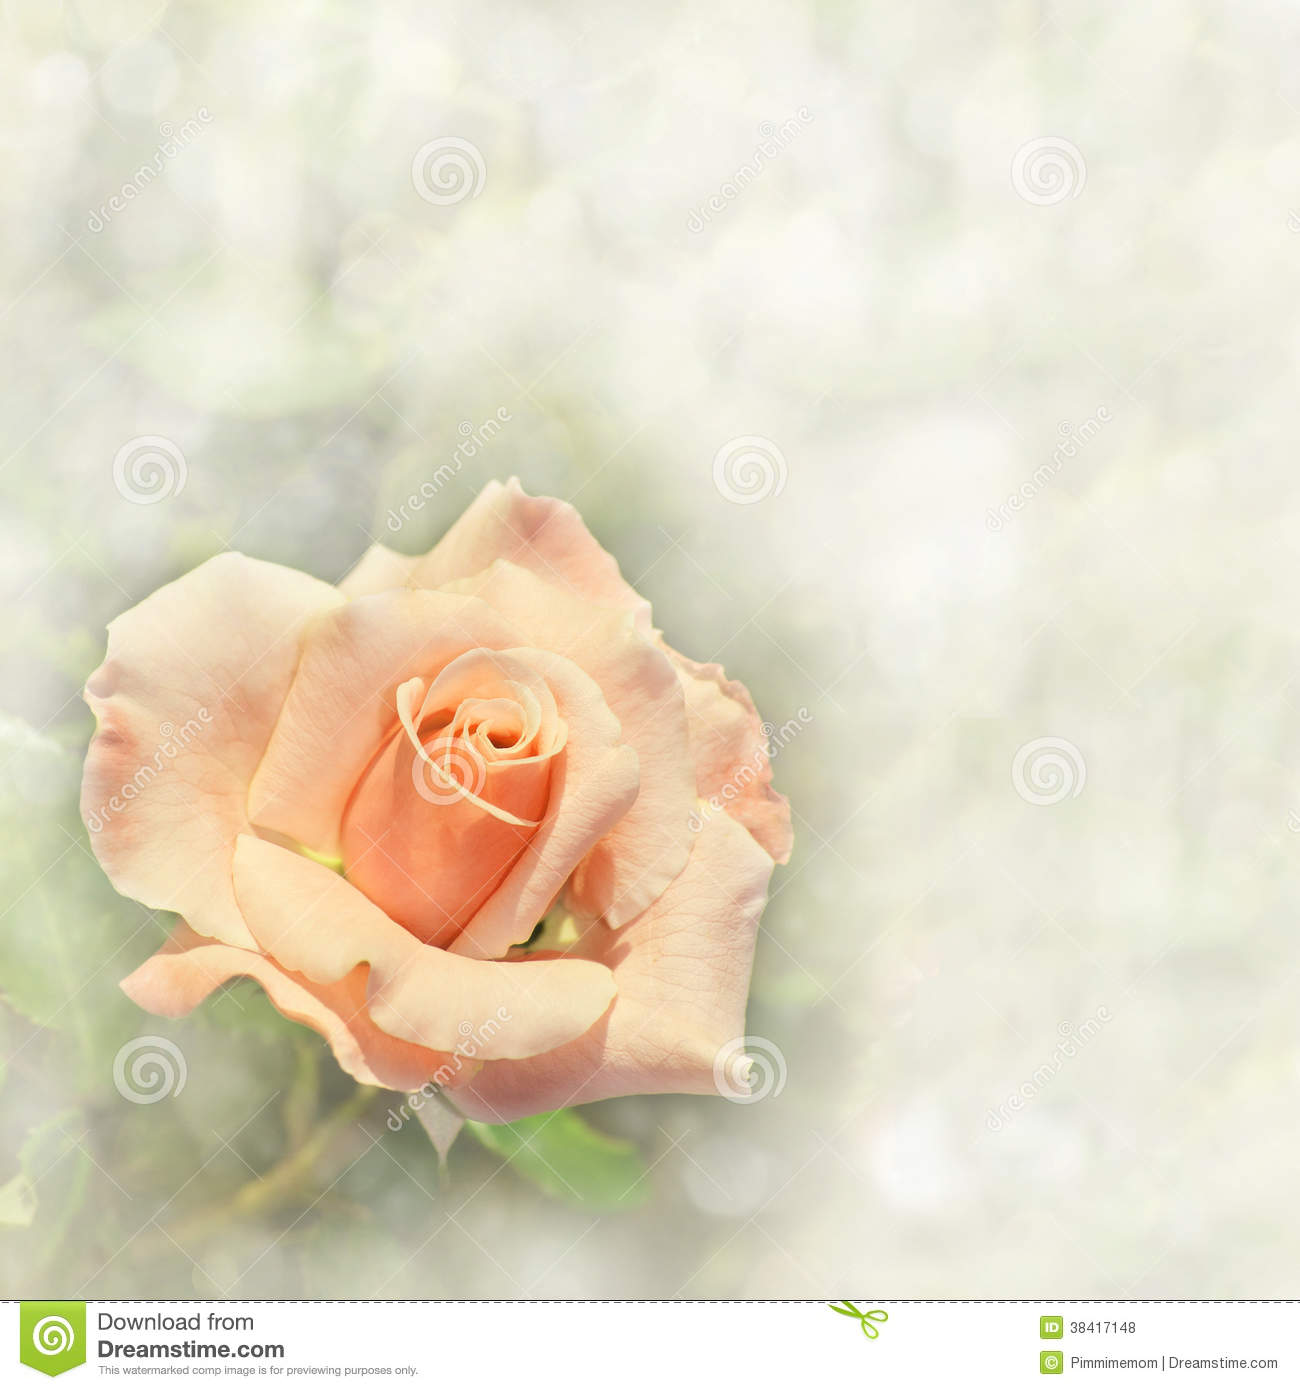 Gorgeous light orange rose on a dreamy background